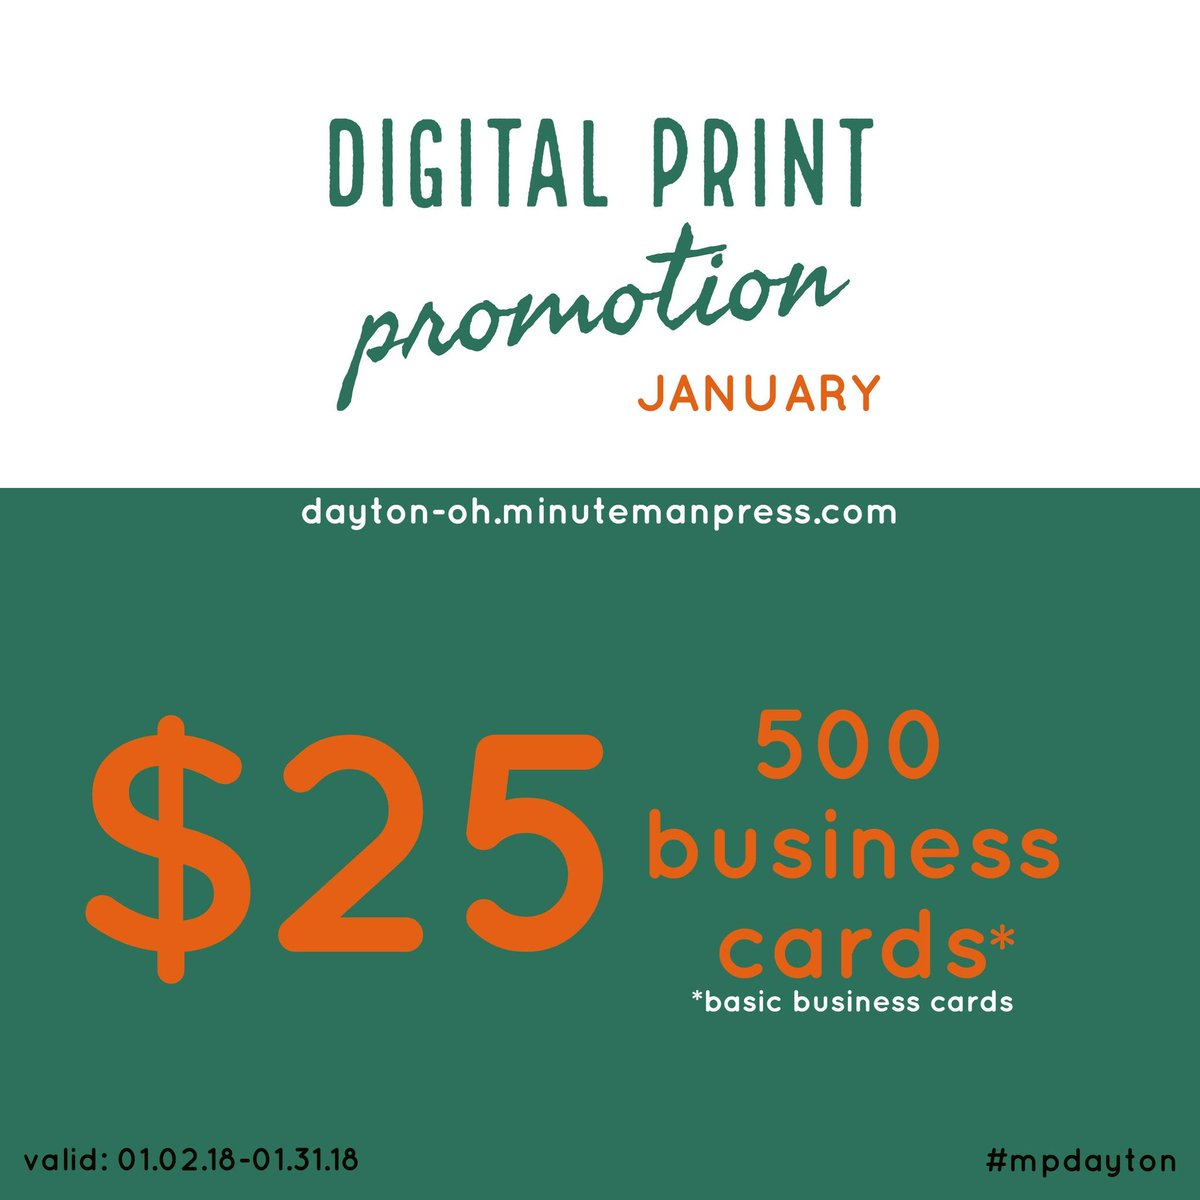 Minuteman press on twitter januarys digital print promotion 500 minuteman press on twitter januarys digital print promotion 500 businesscards for 25 dayton mypdayton shopdayton minutemanpress print promo reheart Gallery